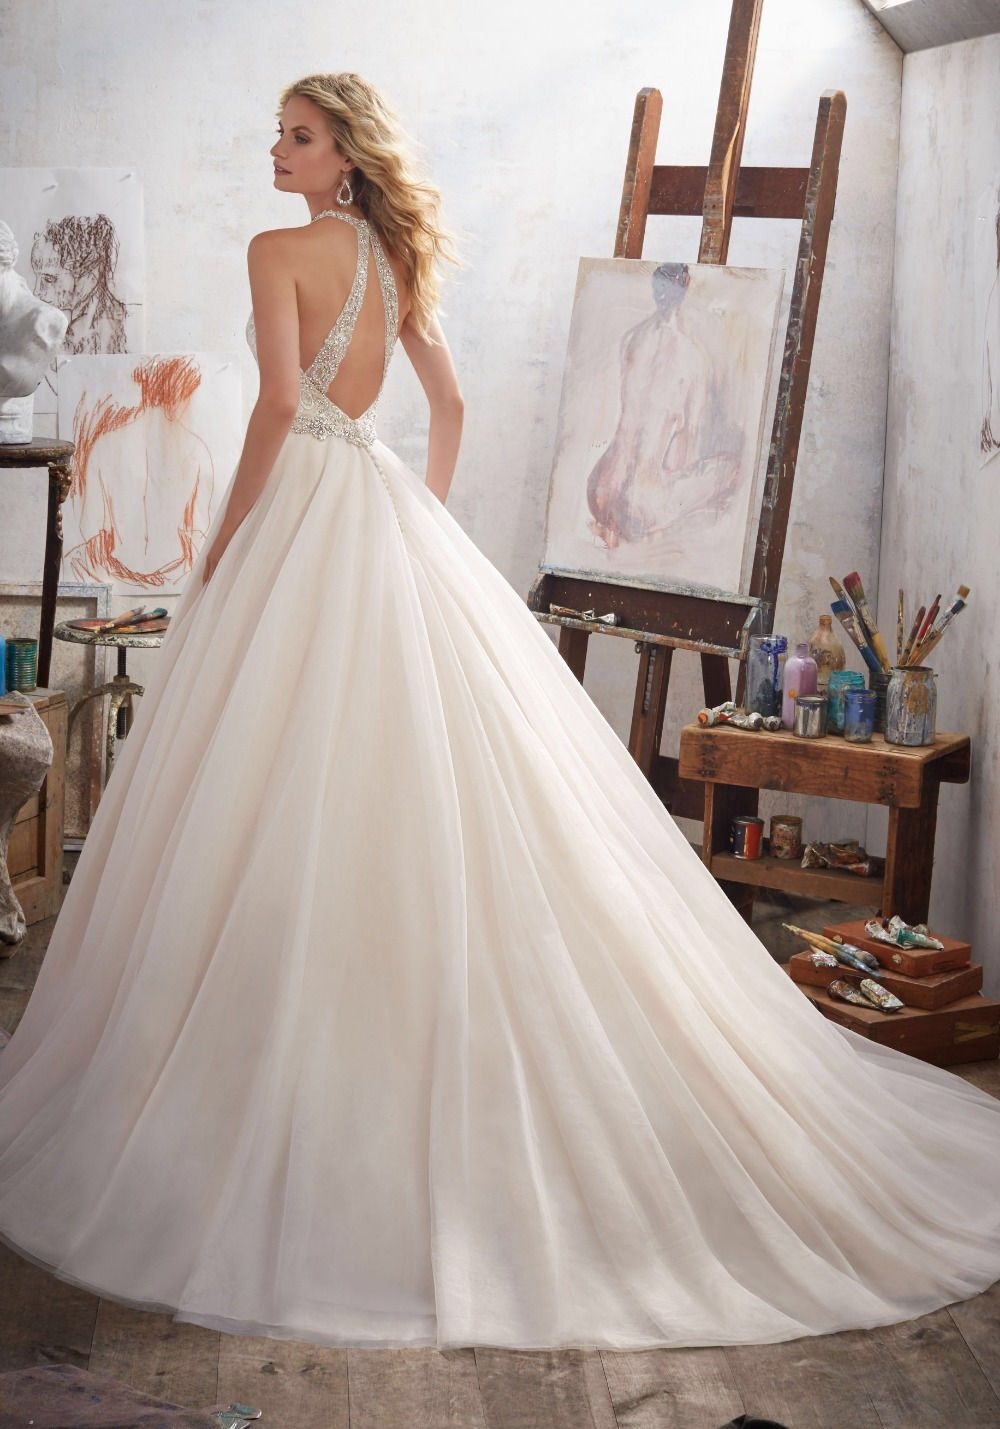 Aline wedding dress with sexy vneck and back design by